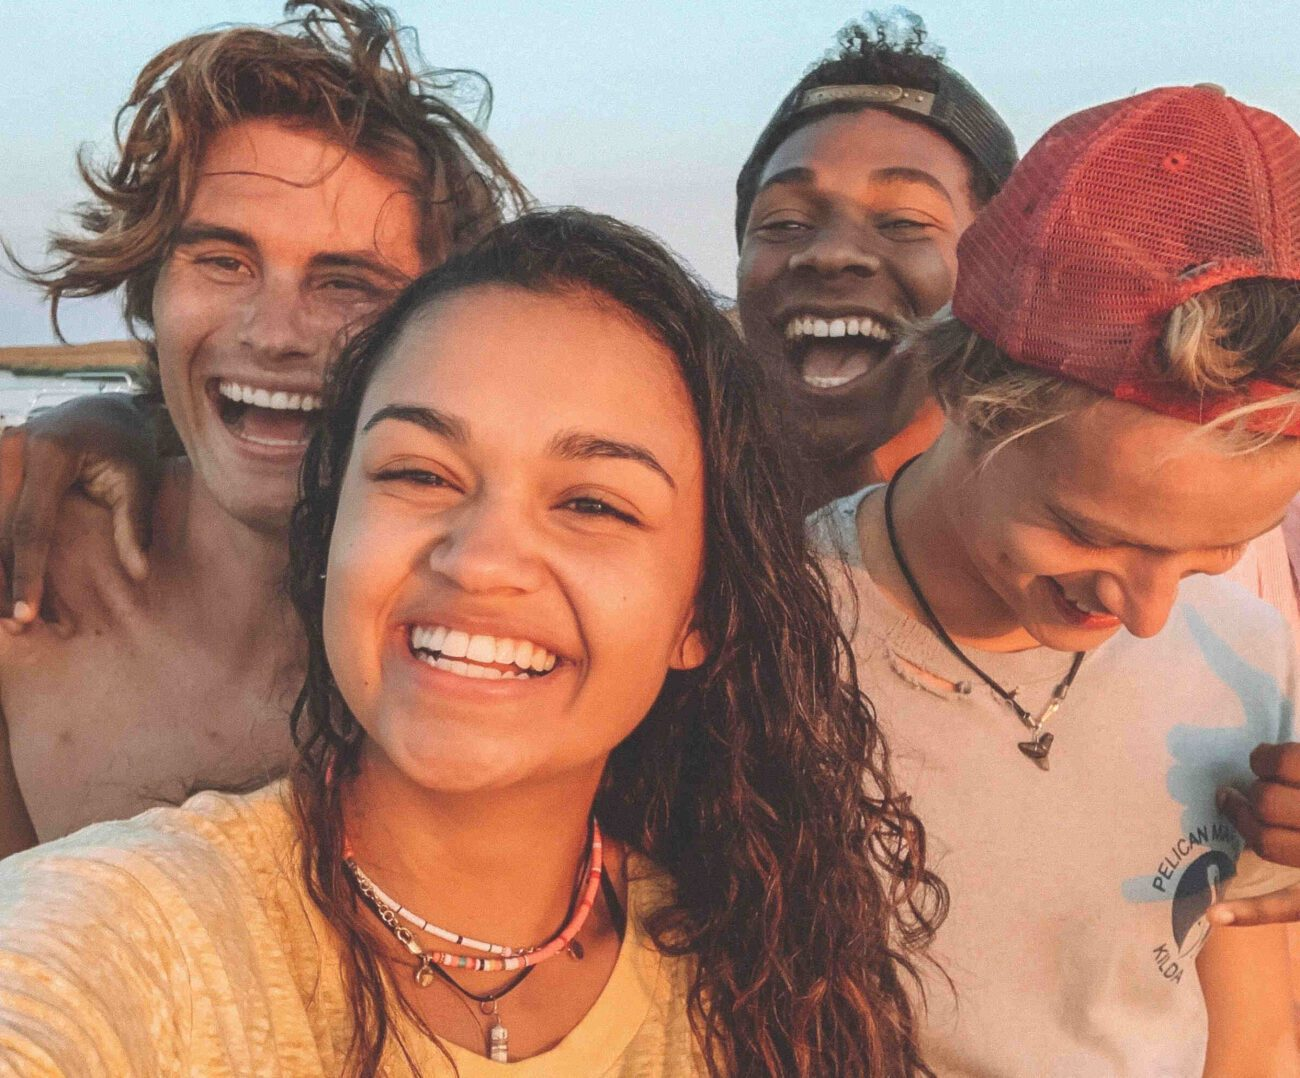 What will they dream up next? After season 2 dropped on Netflix, 'Outer Banks' fans have some new theories. Peruse them here and let us know what you think!